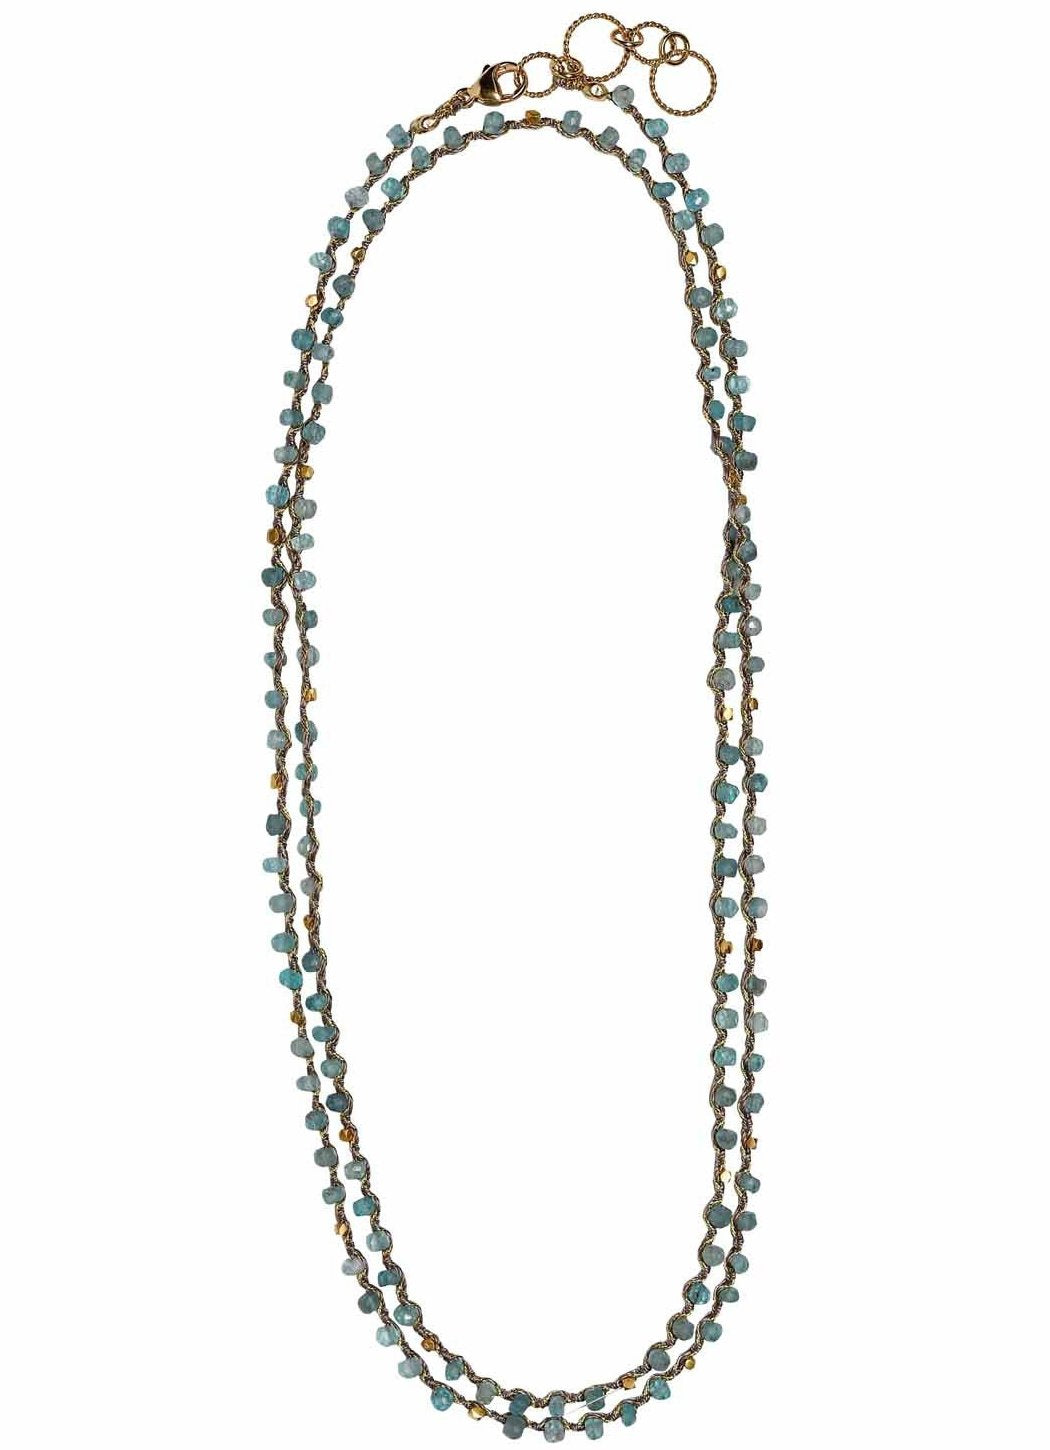 Woven Long Necklace in Apatite | Patterned Weave